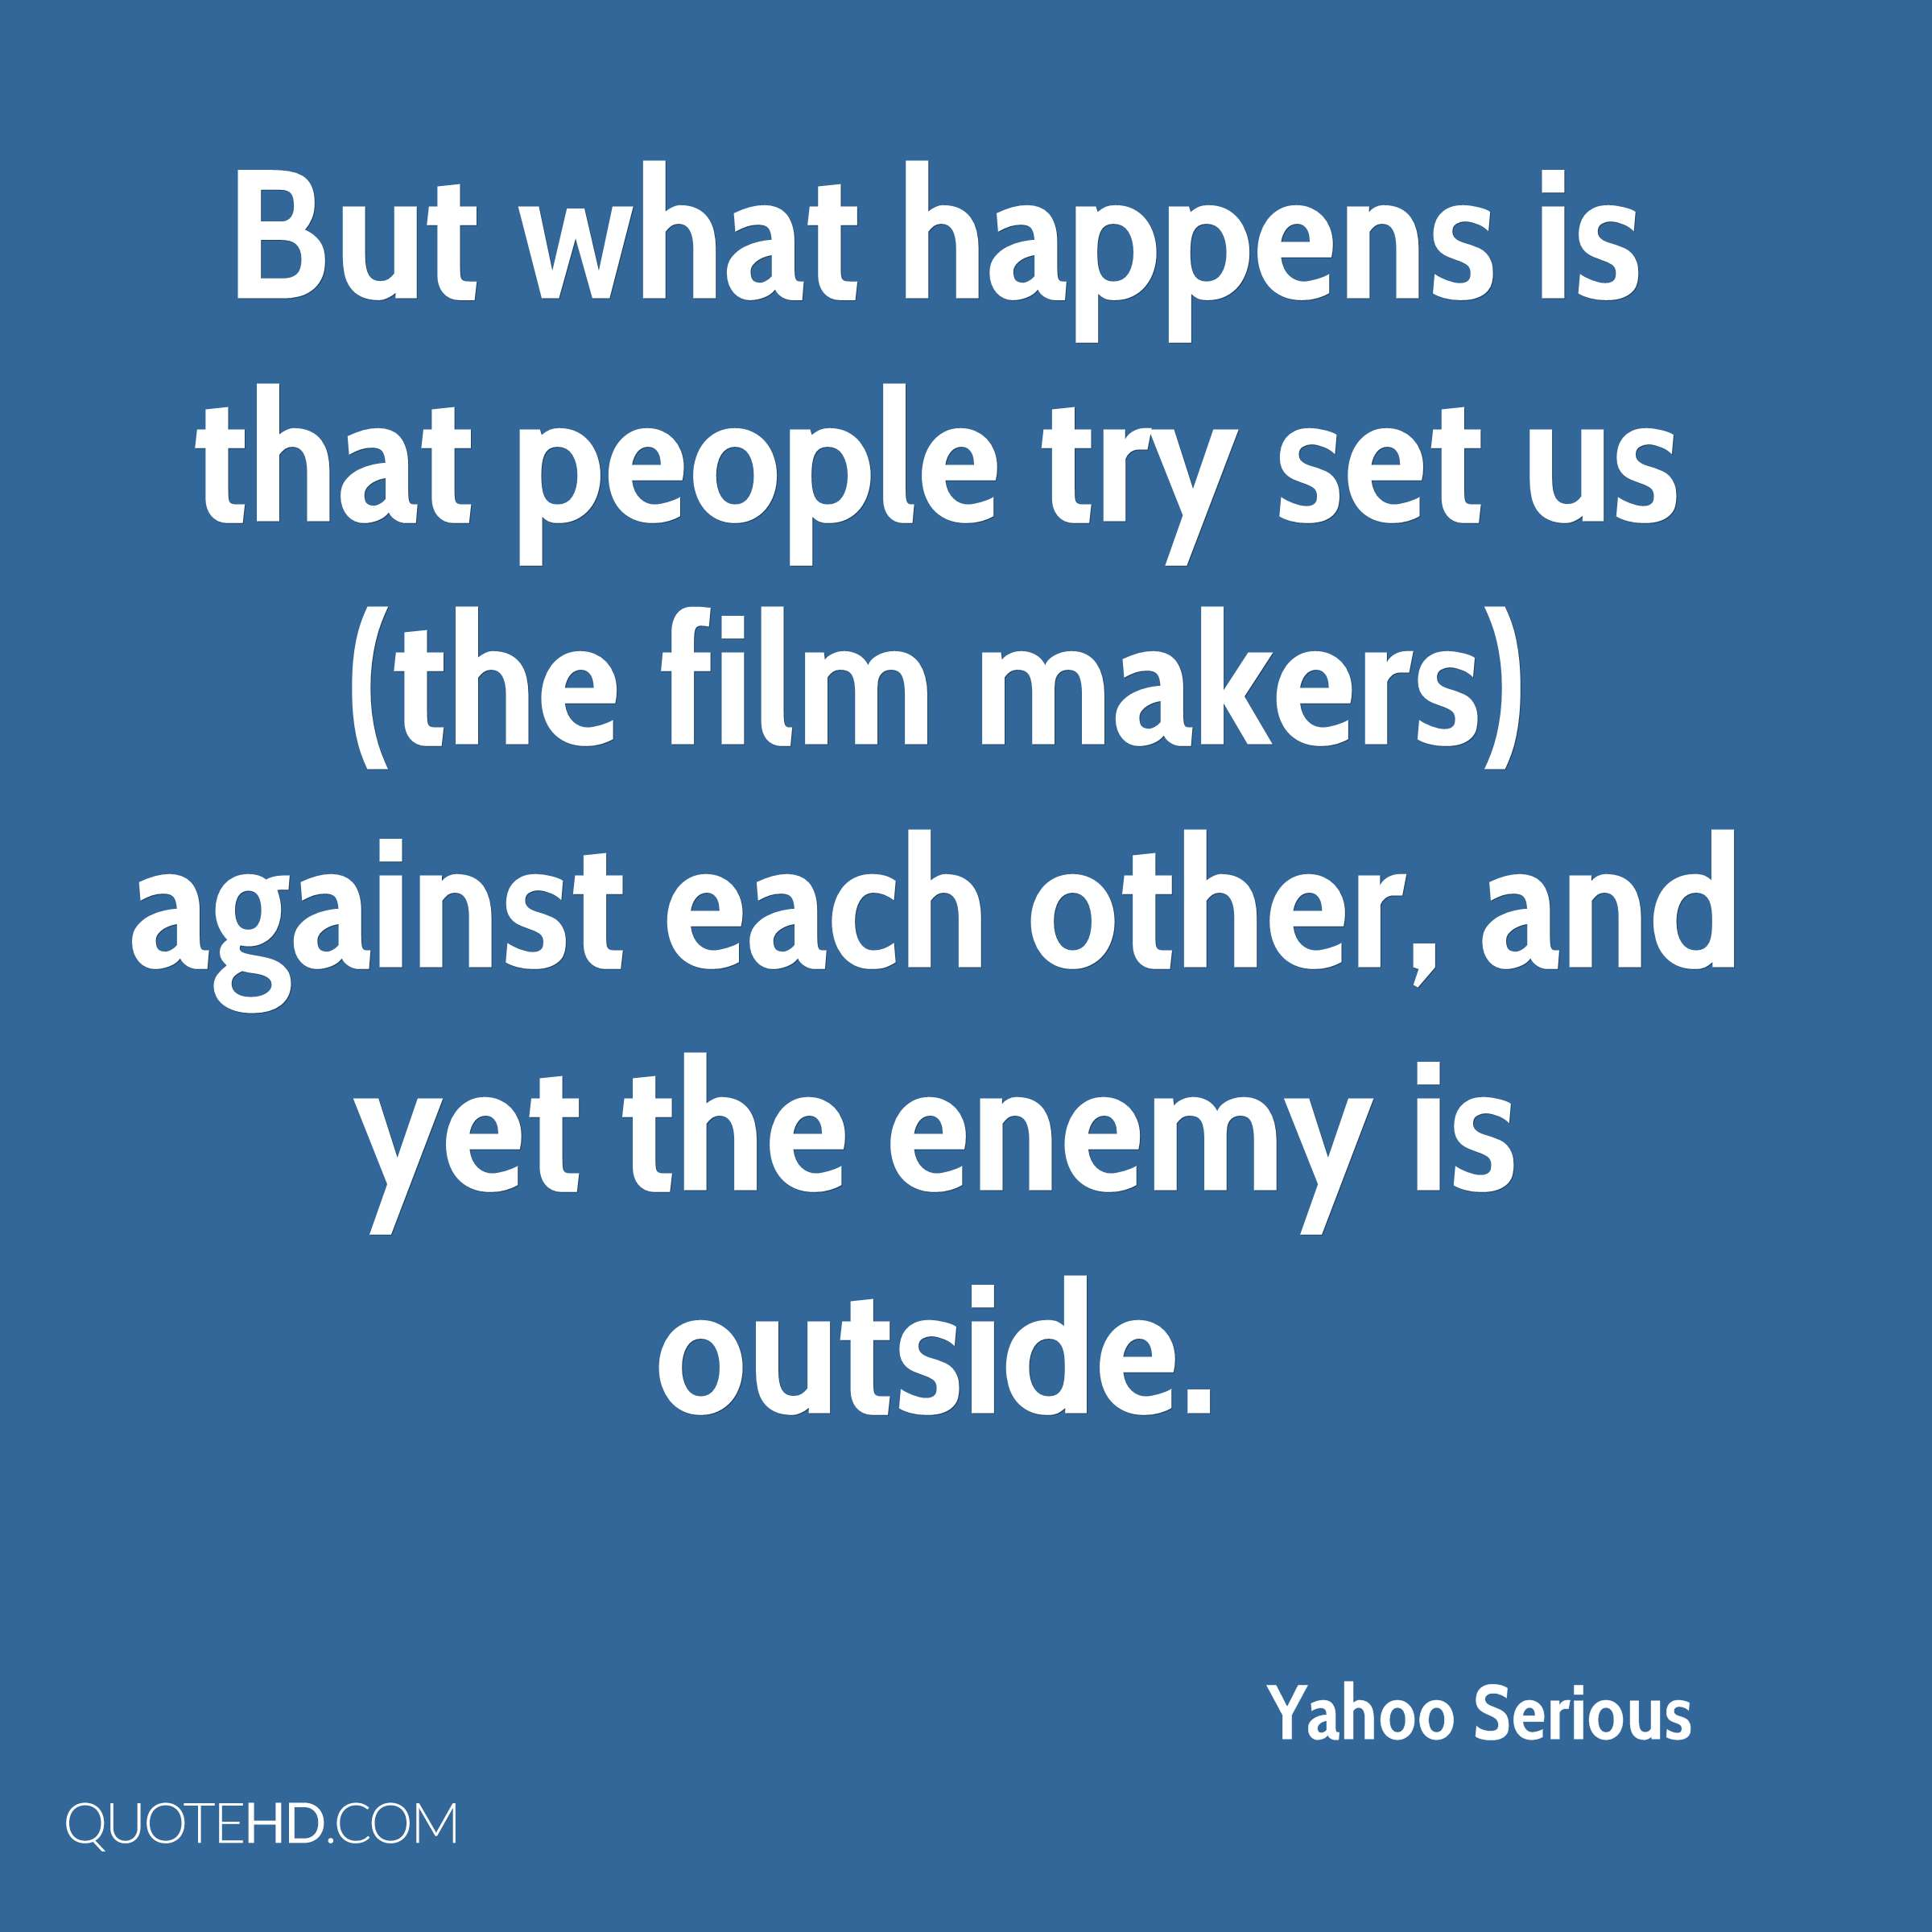 But what happens is that people try set us (the film makers) against each other, and yet the enemy is outside.